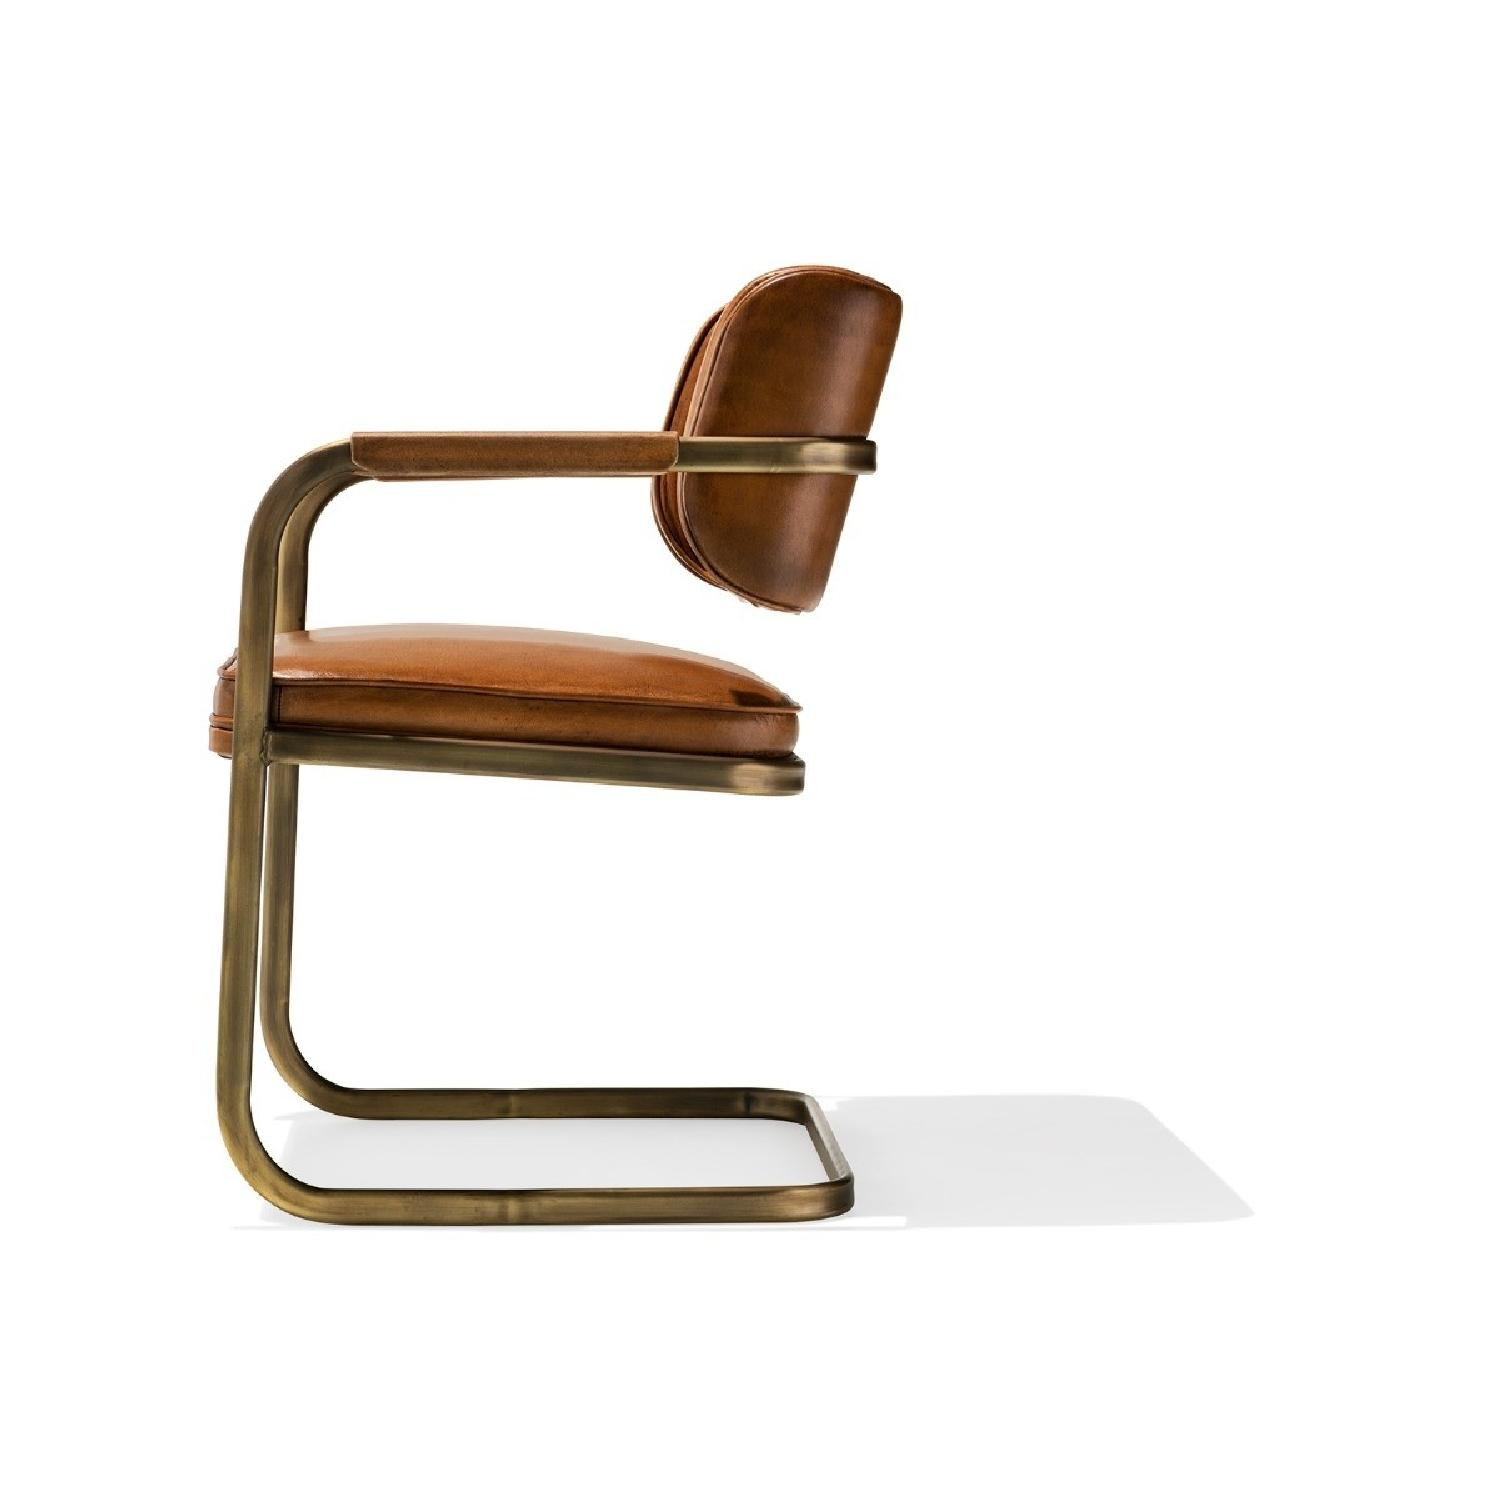 Industry West Jimmy Cooper Chair in Light Brown/Copper - image-2